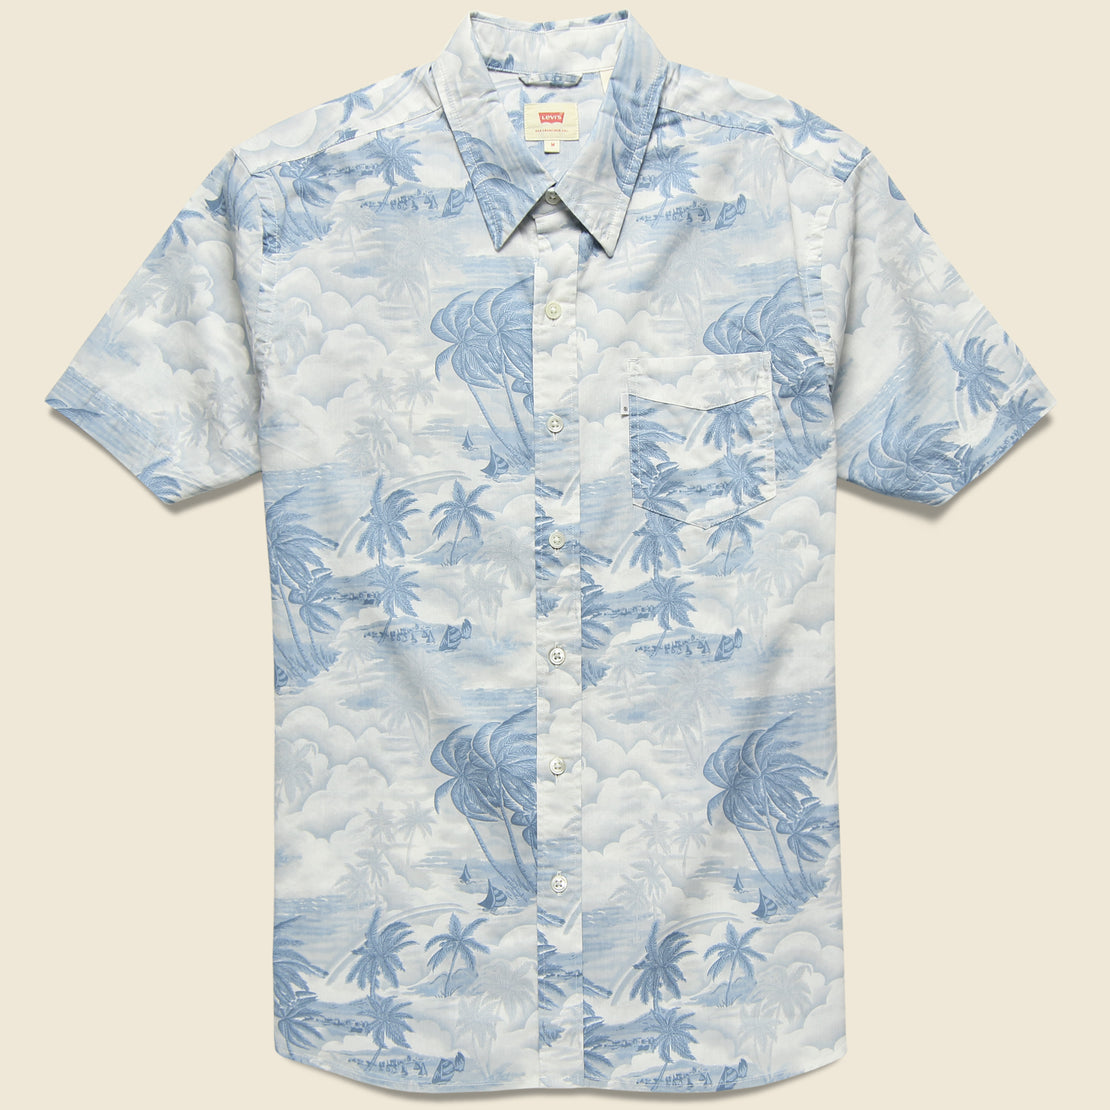 84d1a4c0c56 Levis Premium Sunset Pocket Shirt - Acid Hawaiian Dusty Blue ...